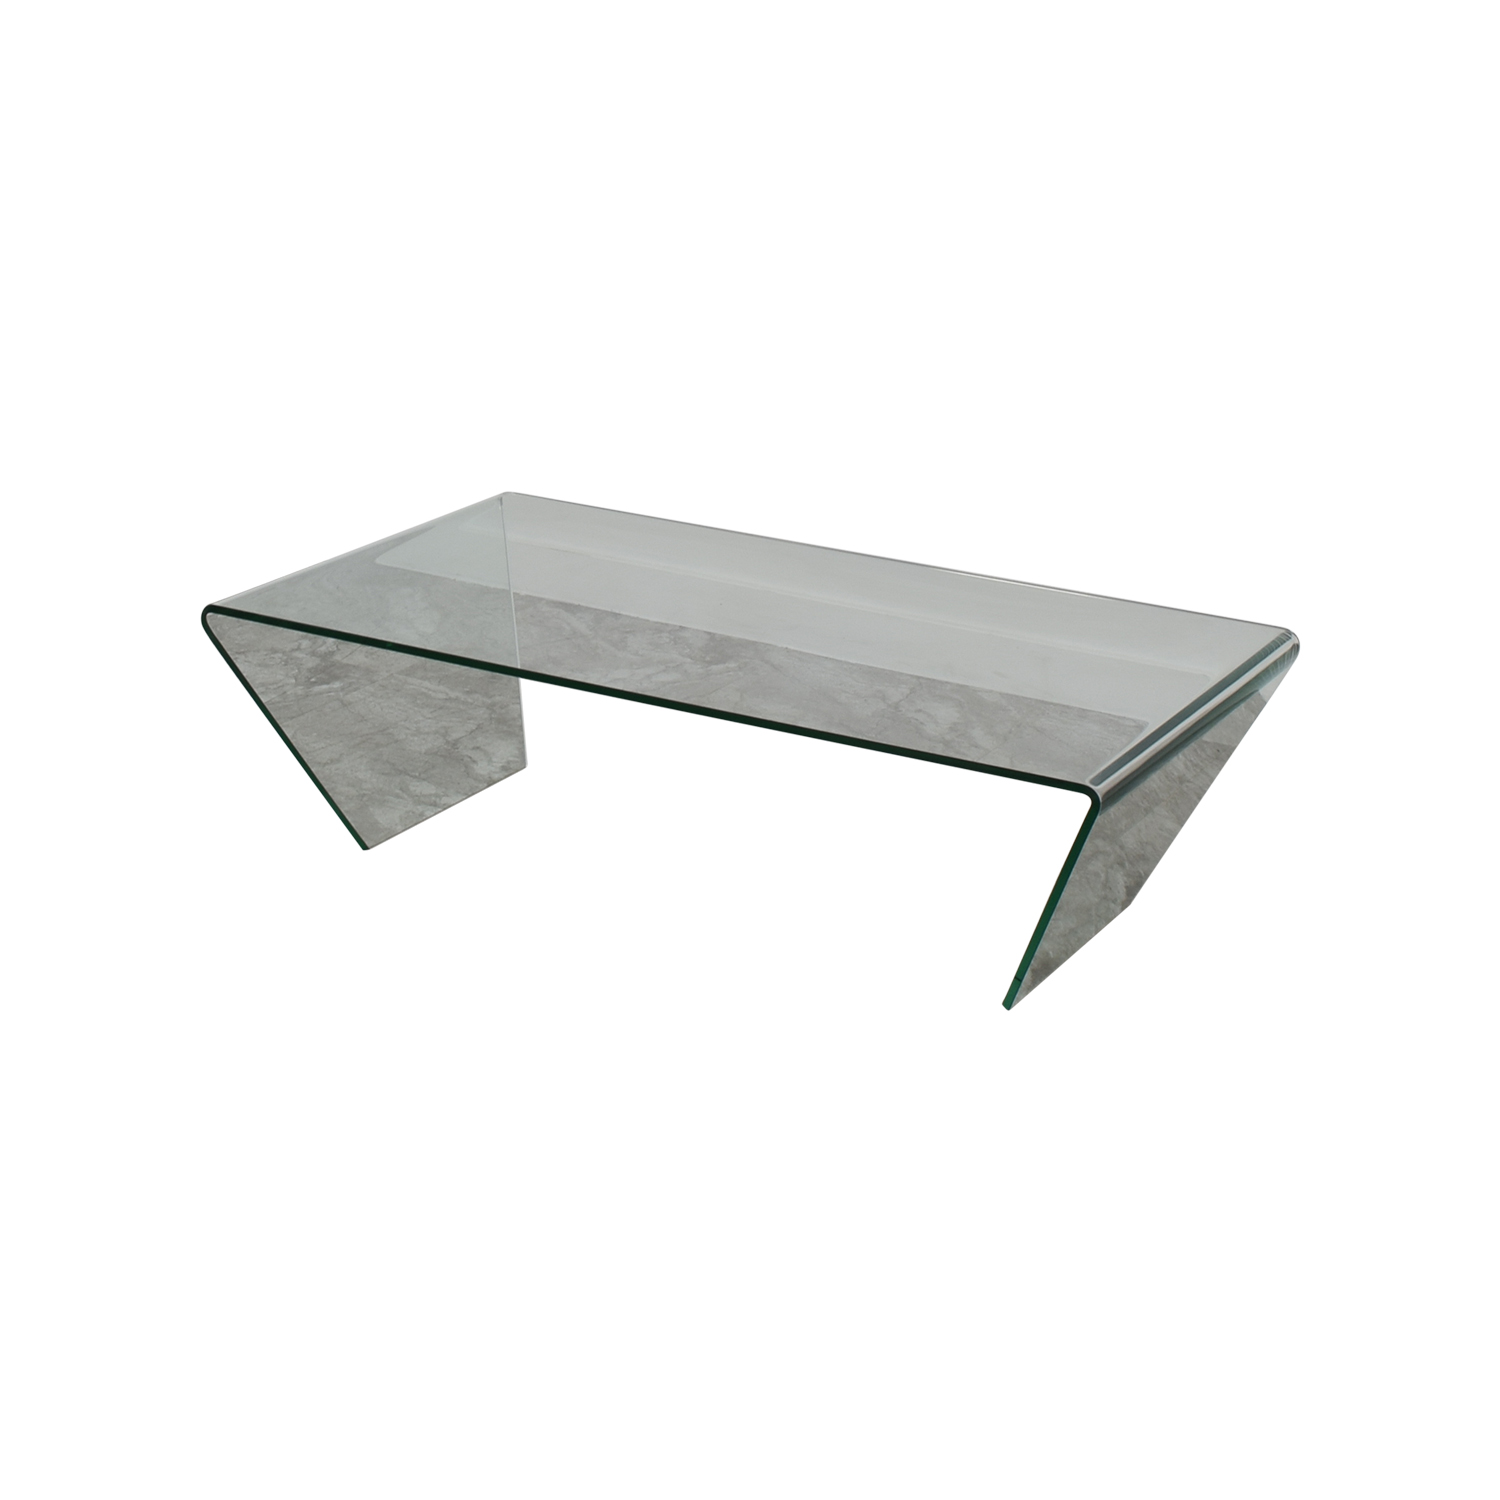 90 off boconcept boconcept glass coffee table tables Used glass coffee table